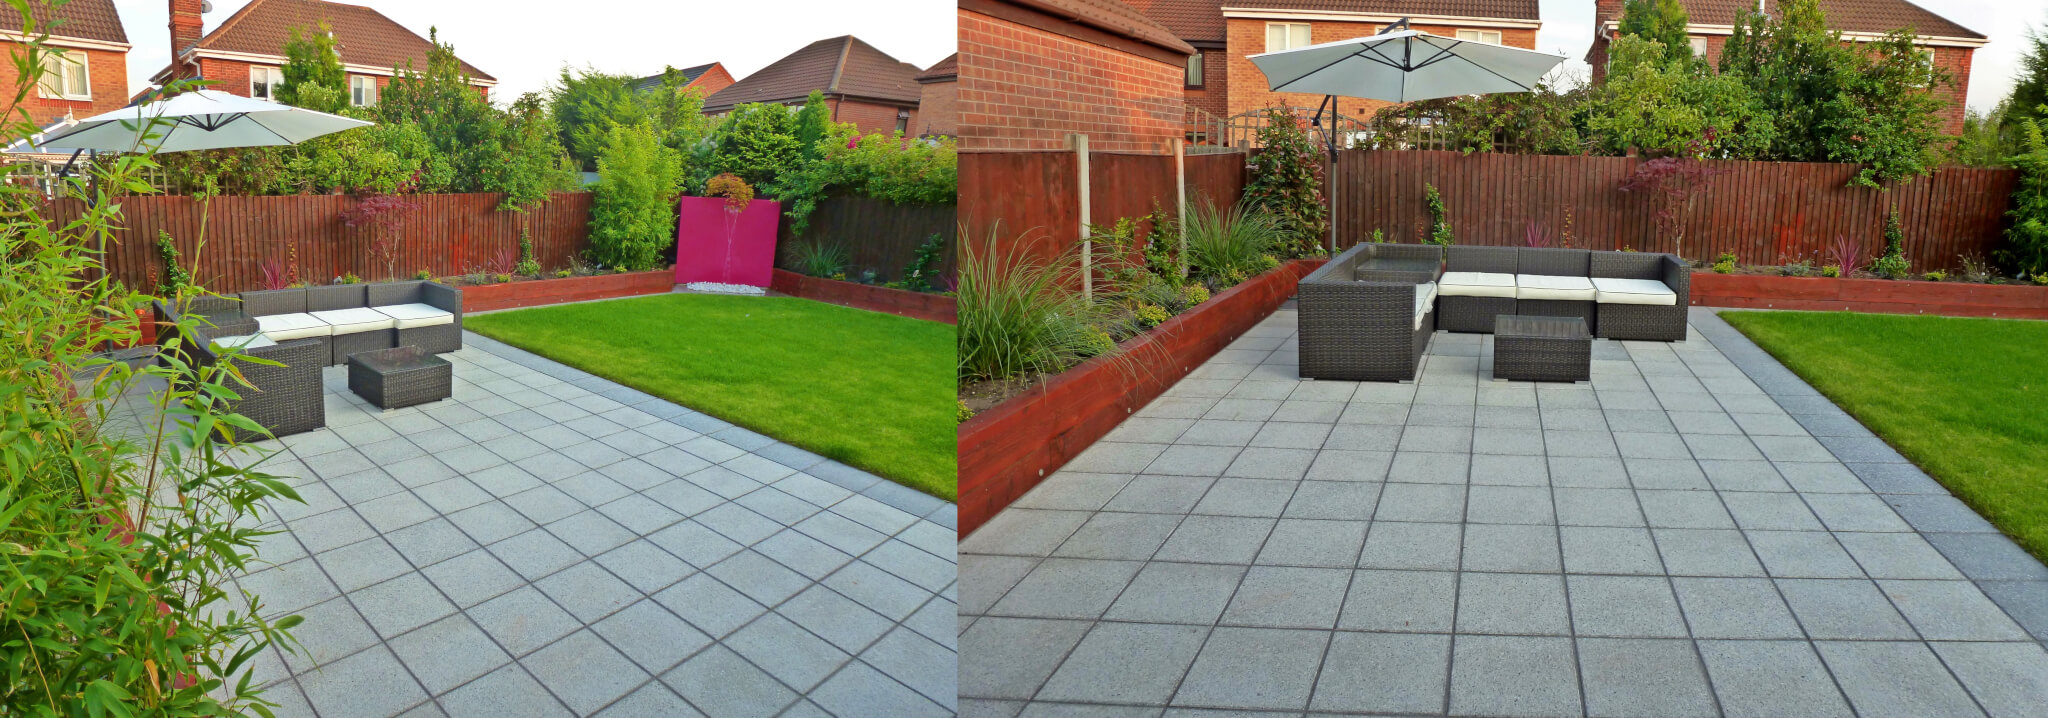 Etonnant U201dA Modern House Will Suit More Contemporary Paving Styles, While  Traditional Paving Lends Itself Well To Period Properties.u201d